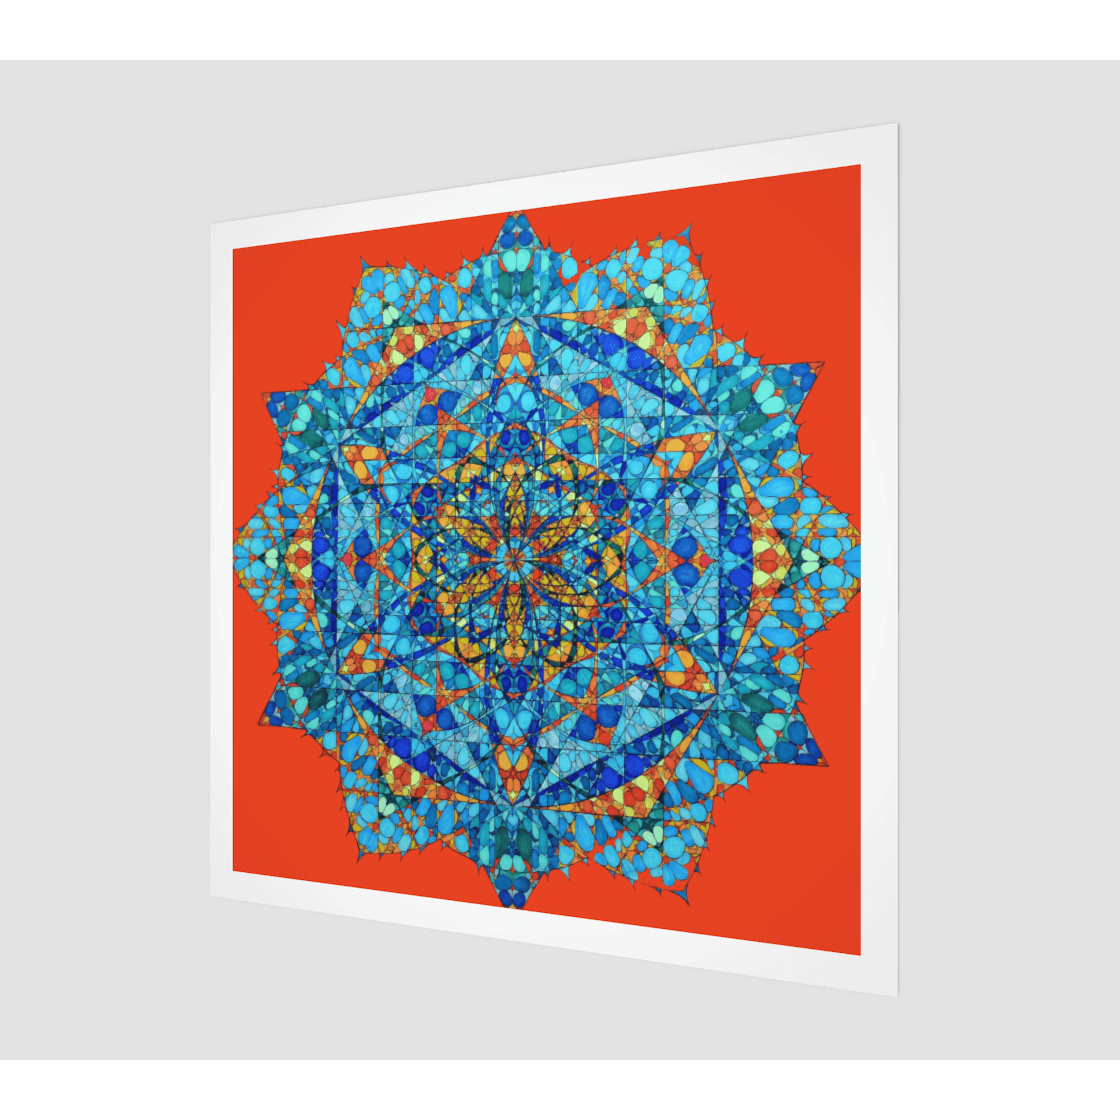 Fine Art Print - The Honey Bee's Merkabah